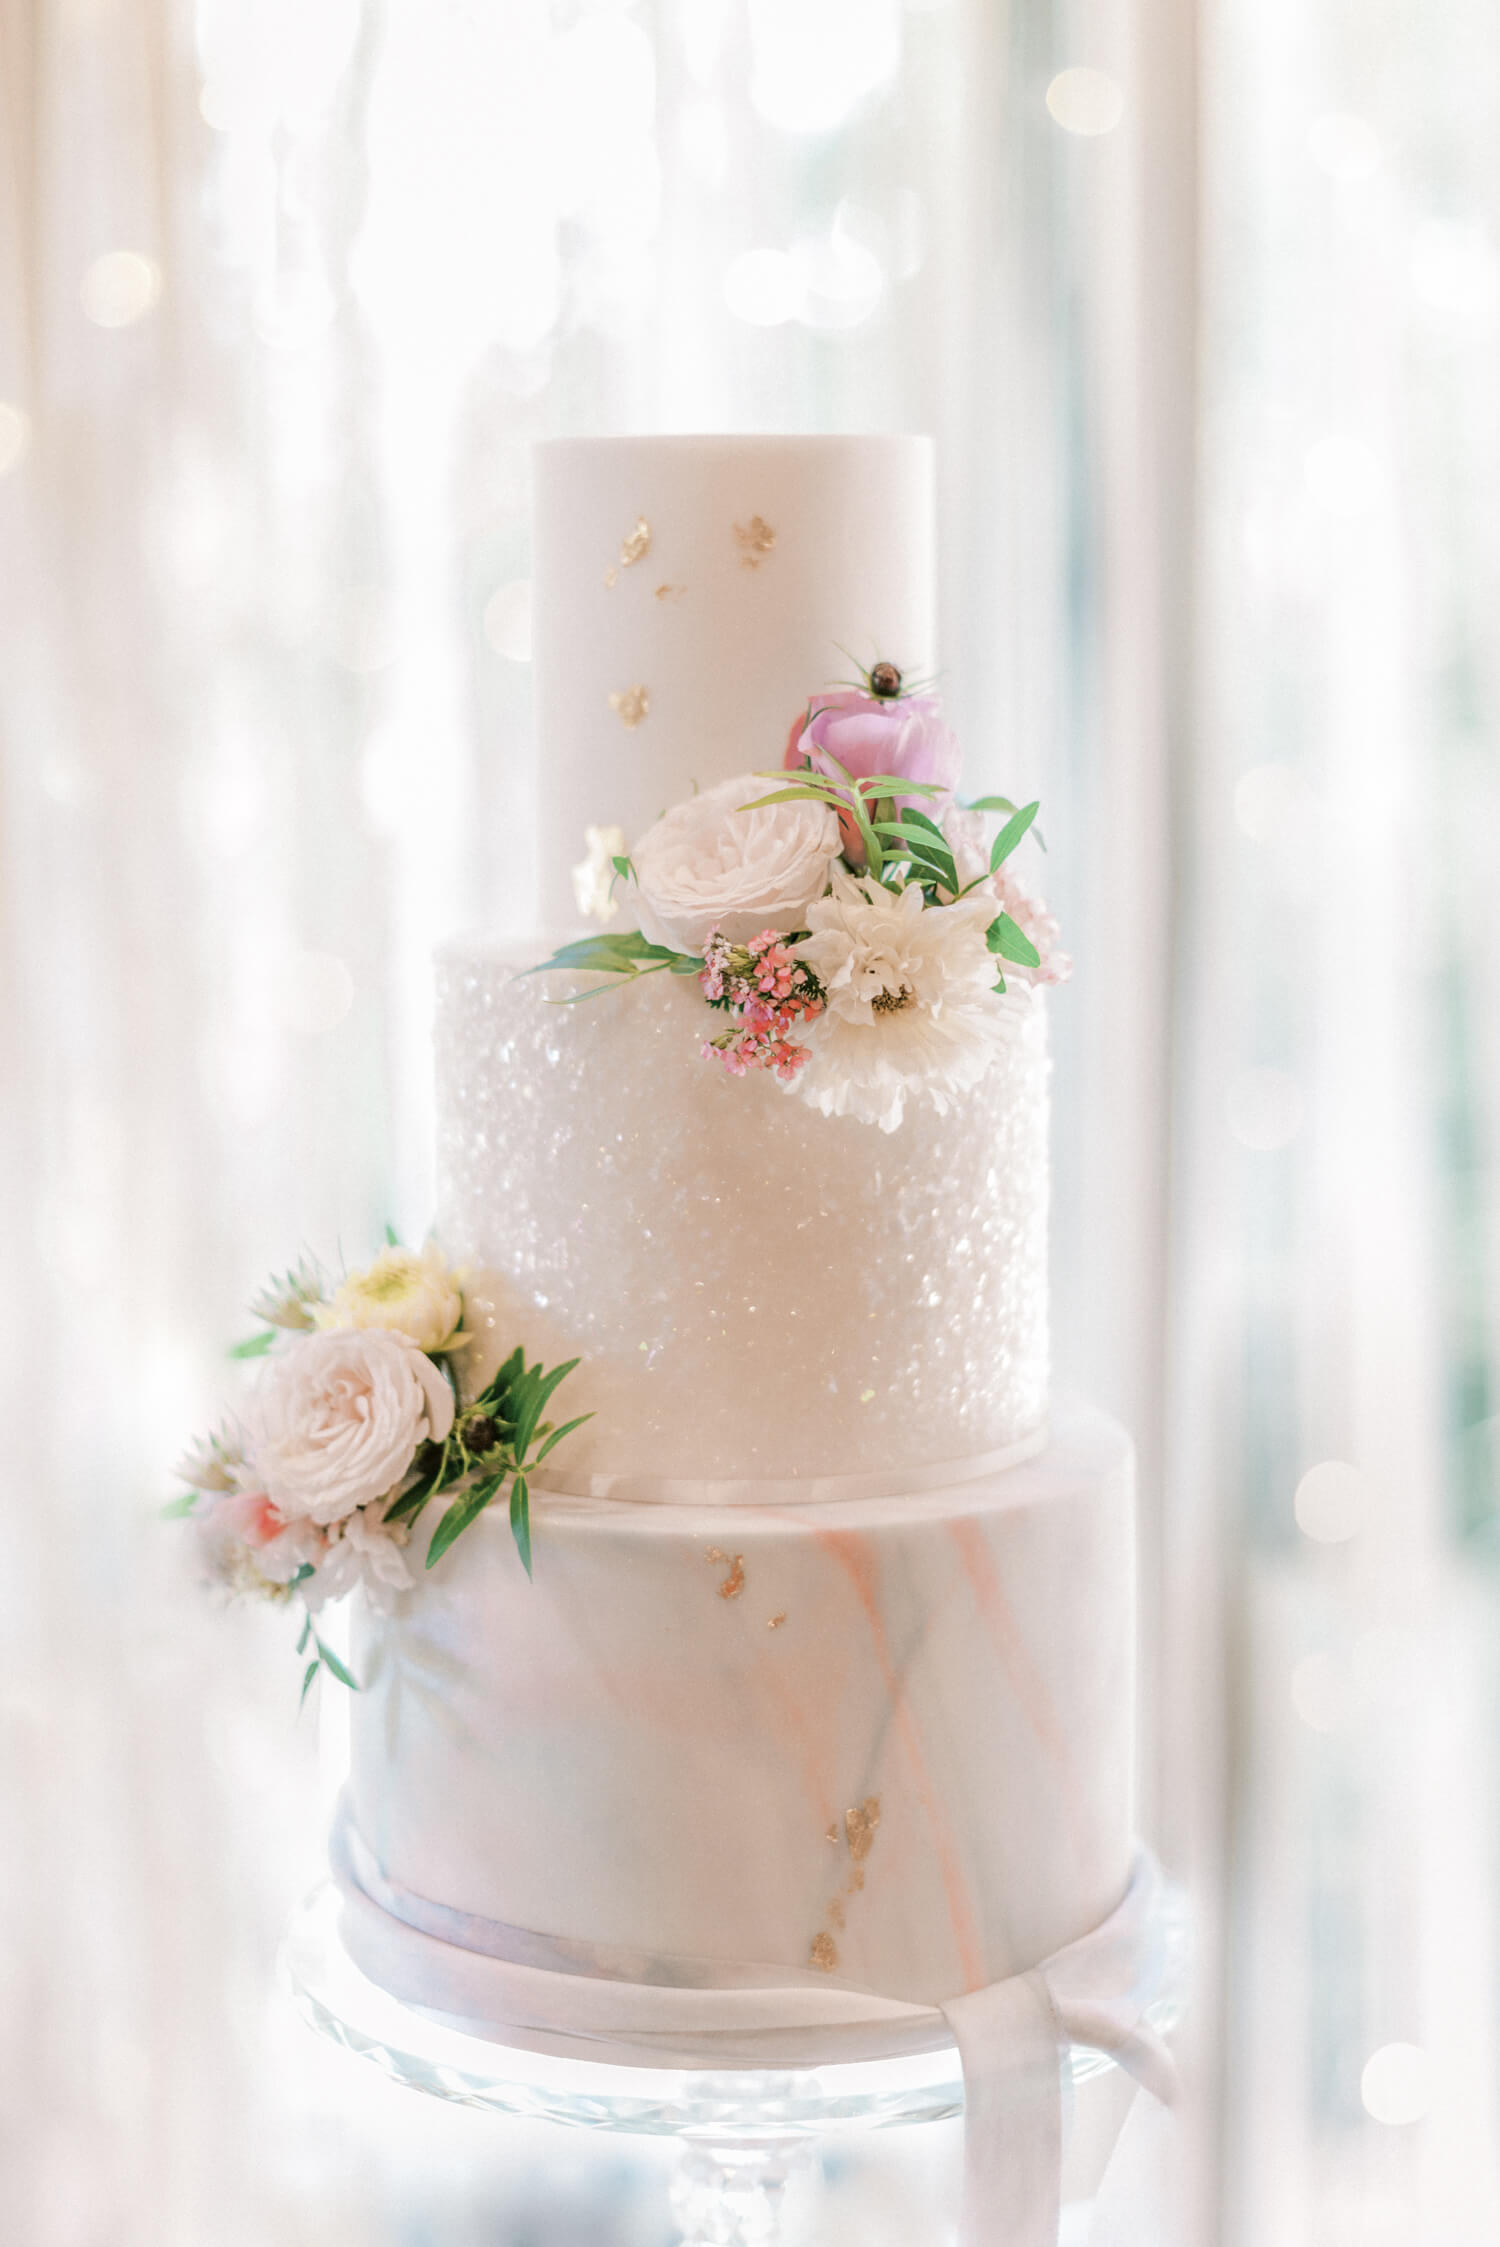 beautiful summer wedding cake ideas - three tier wedding cake with marbled layer, sugar crystal layer and gold leaf layer decorated with real flowers. cake by storeybook cakes and photo by cristina ilao photography